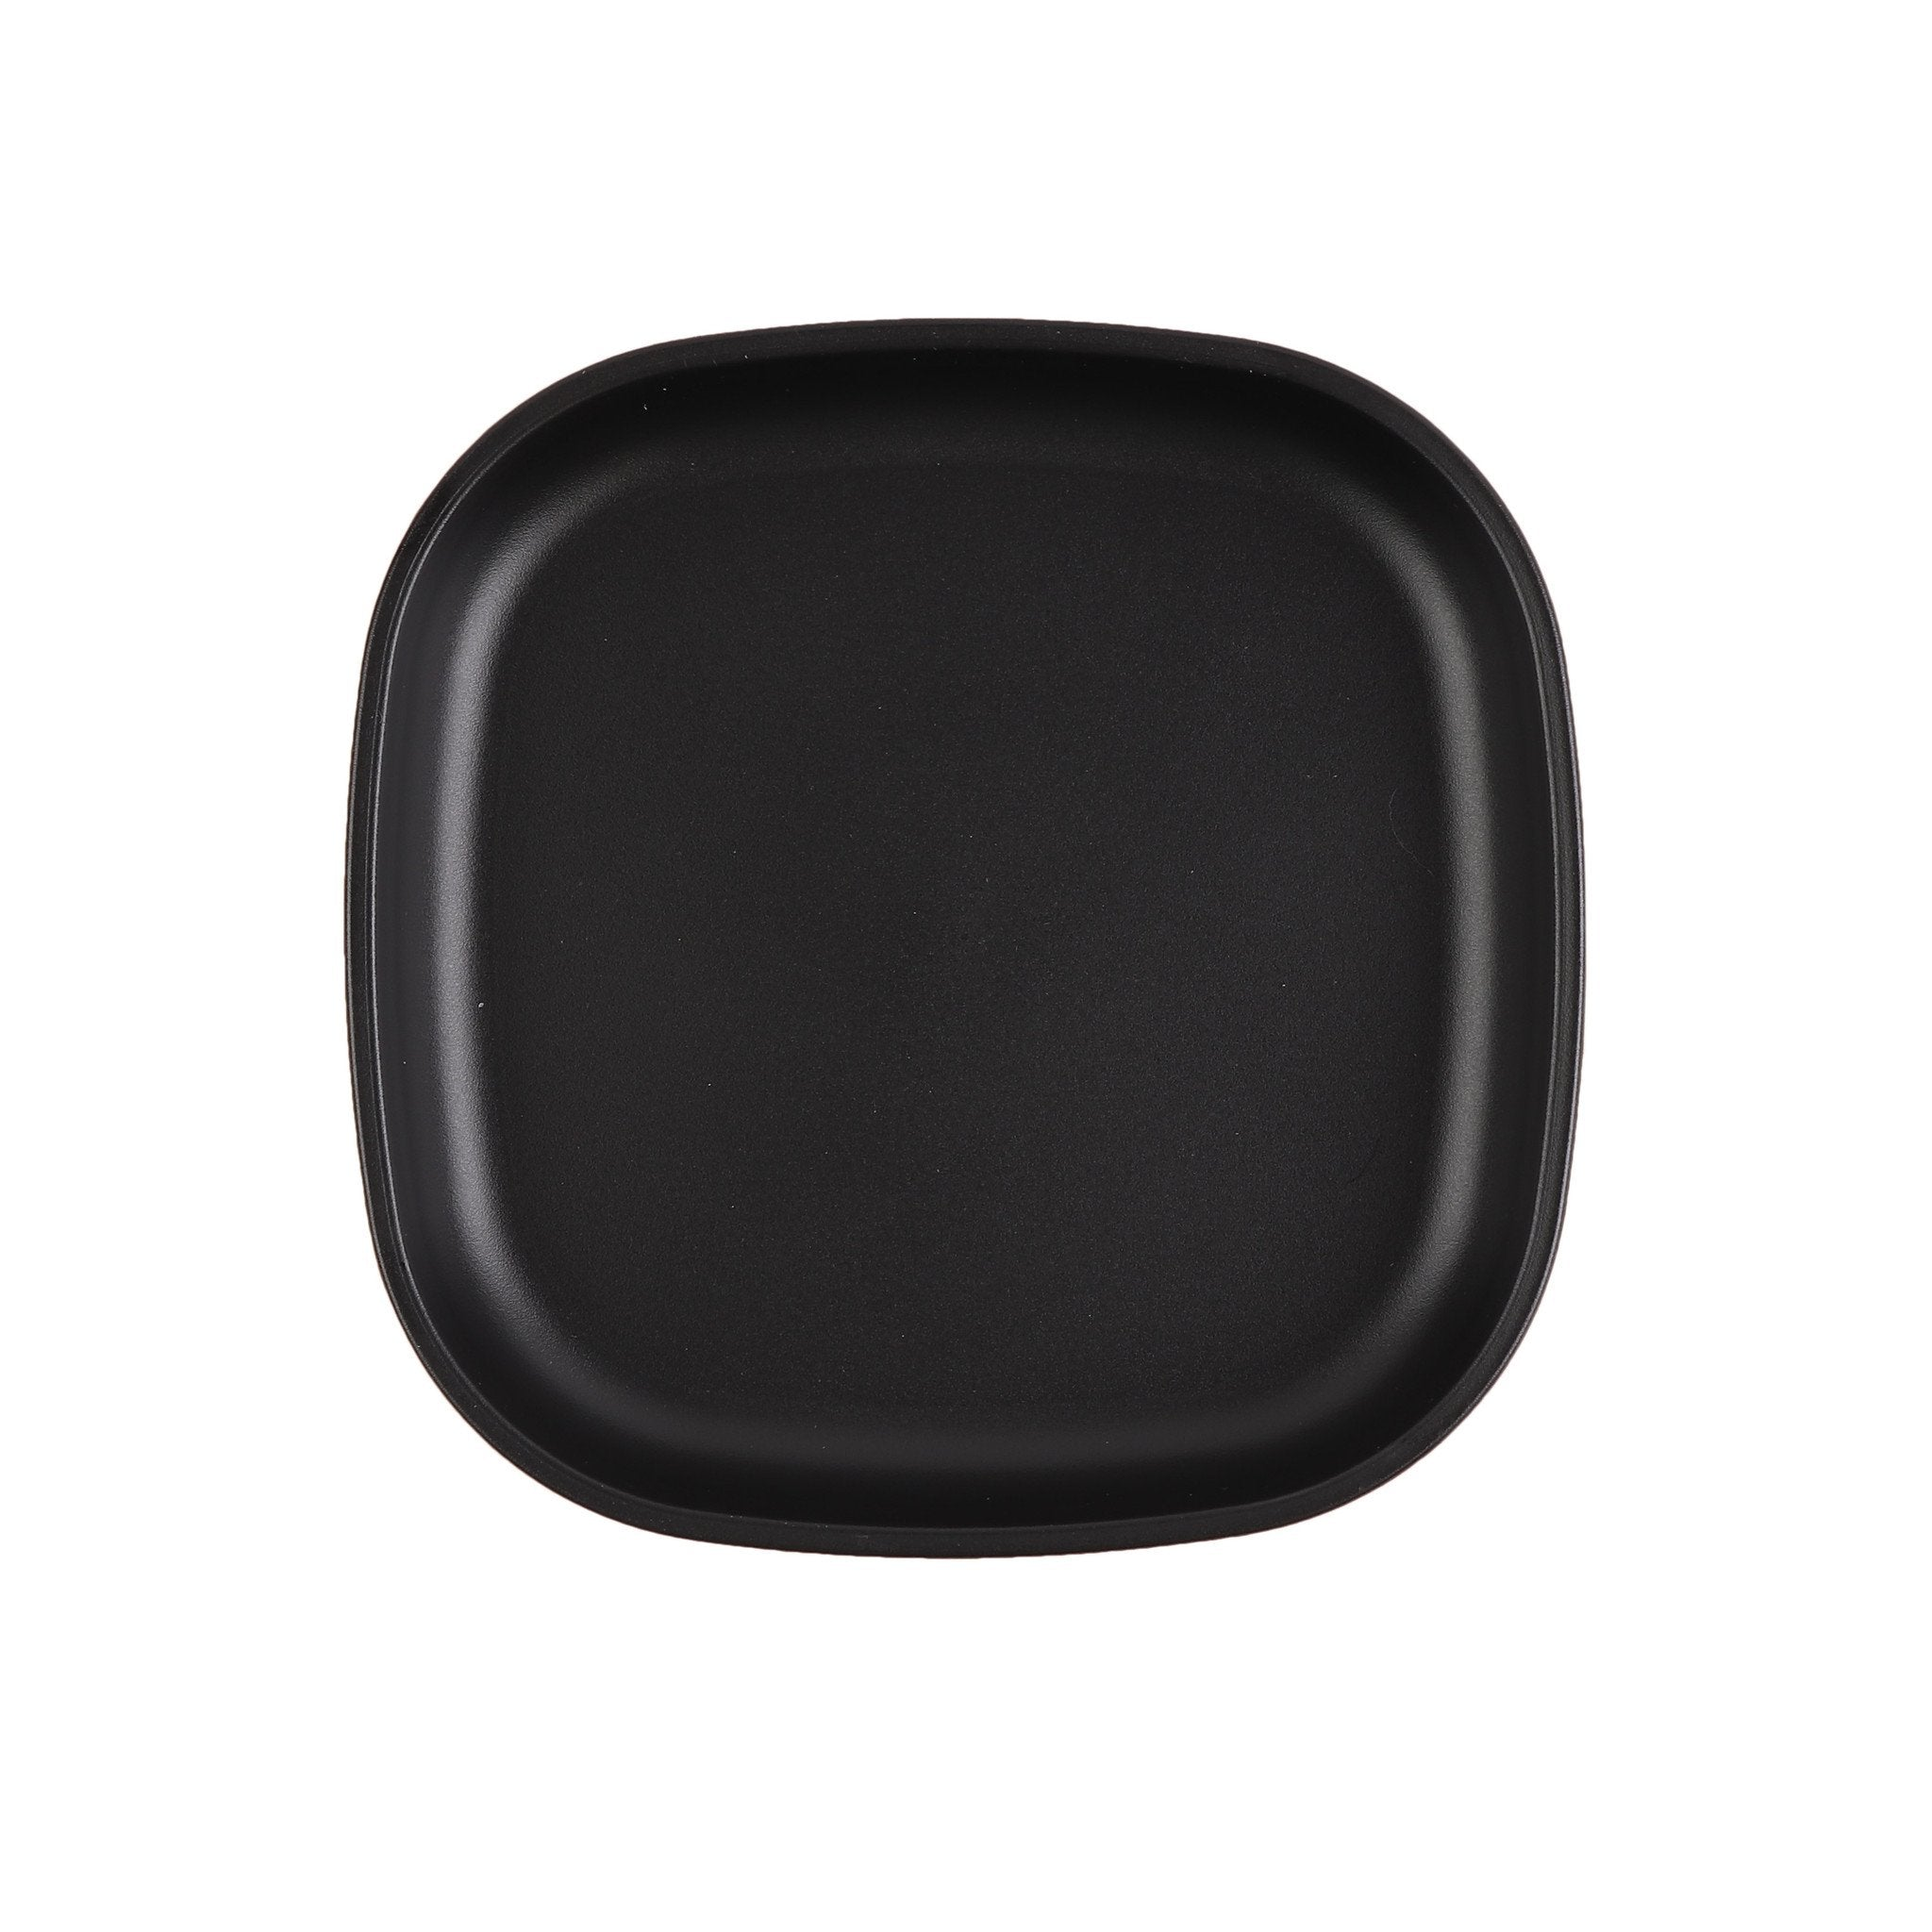 Replay Large Plate Replay Dinnerware Black at Little Earth Nest Eco Shop